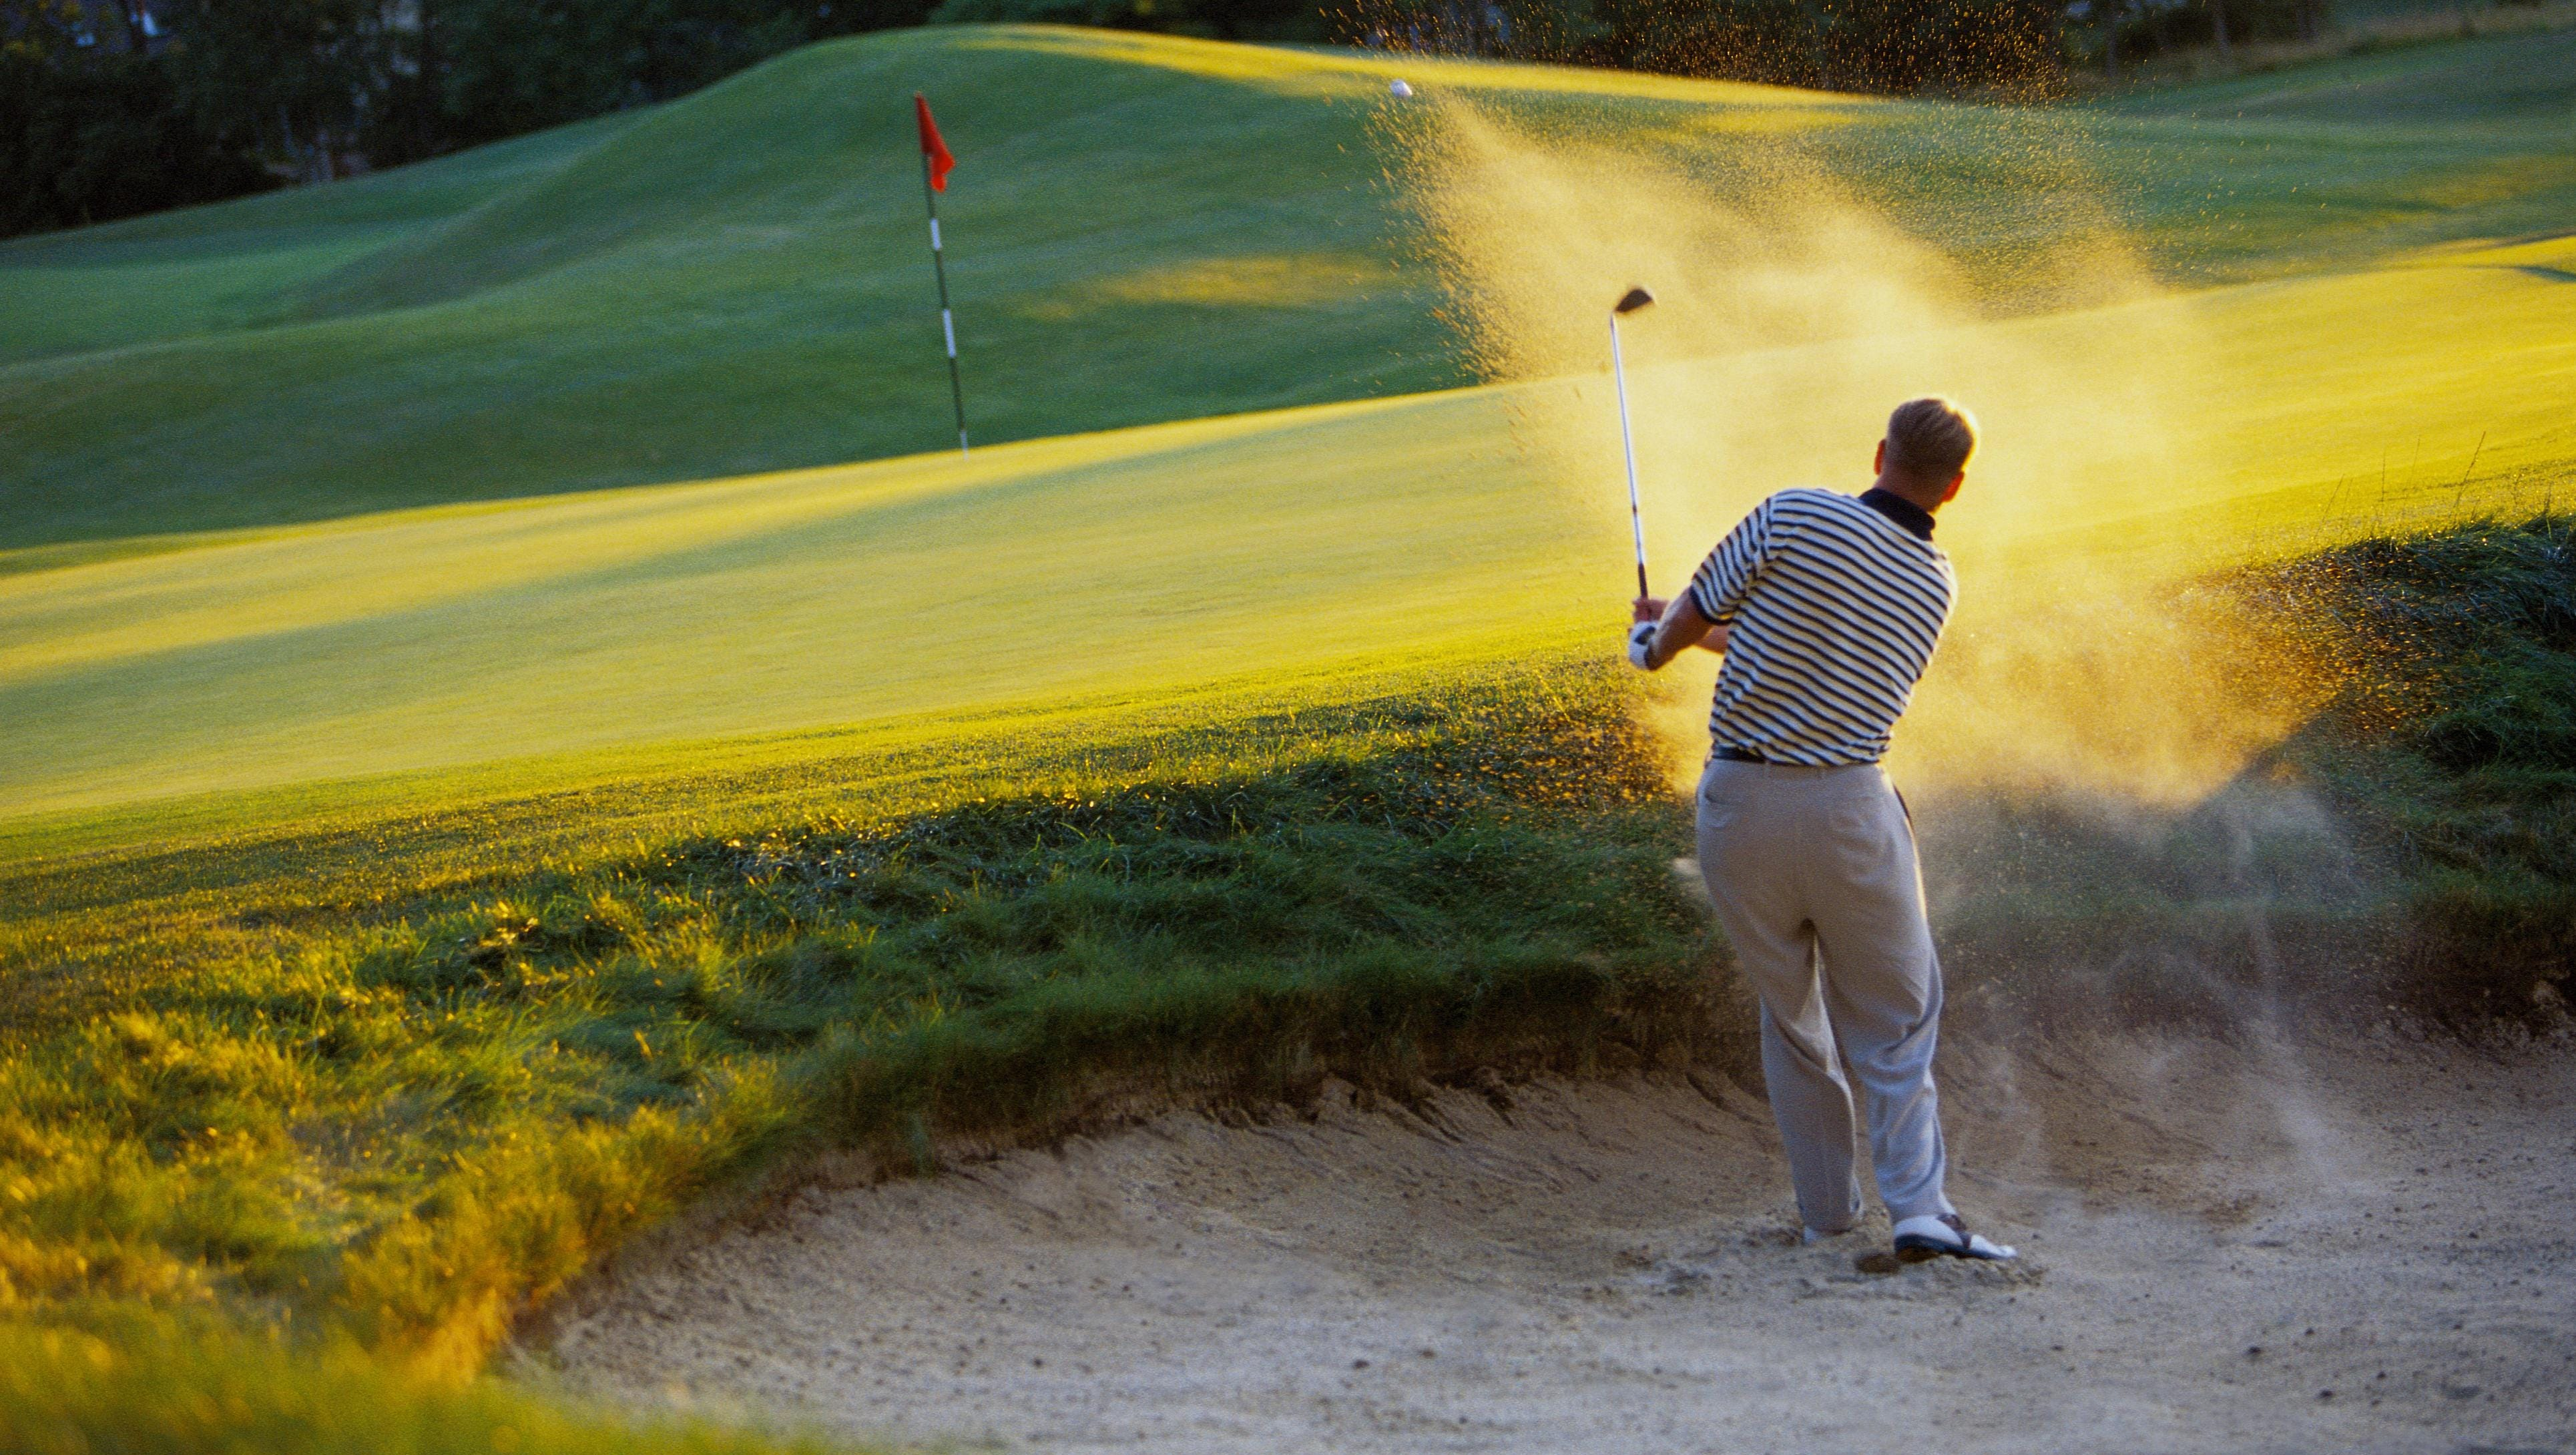 Golf tip: Getting out of sand trap or bunker